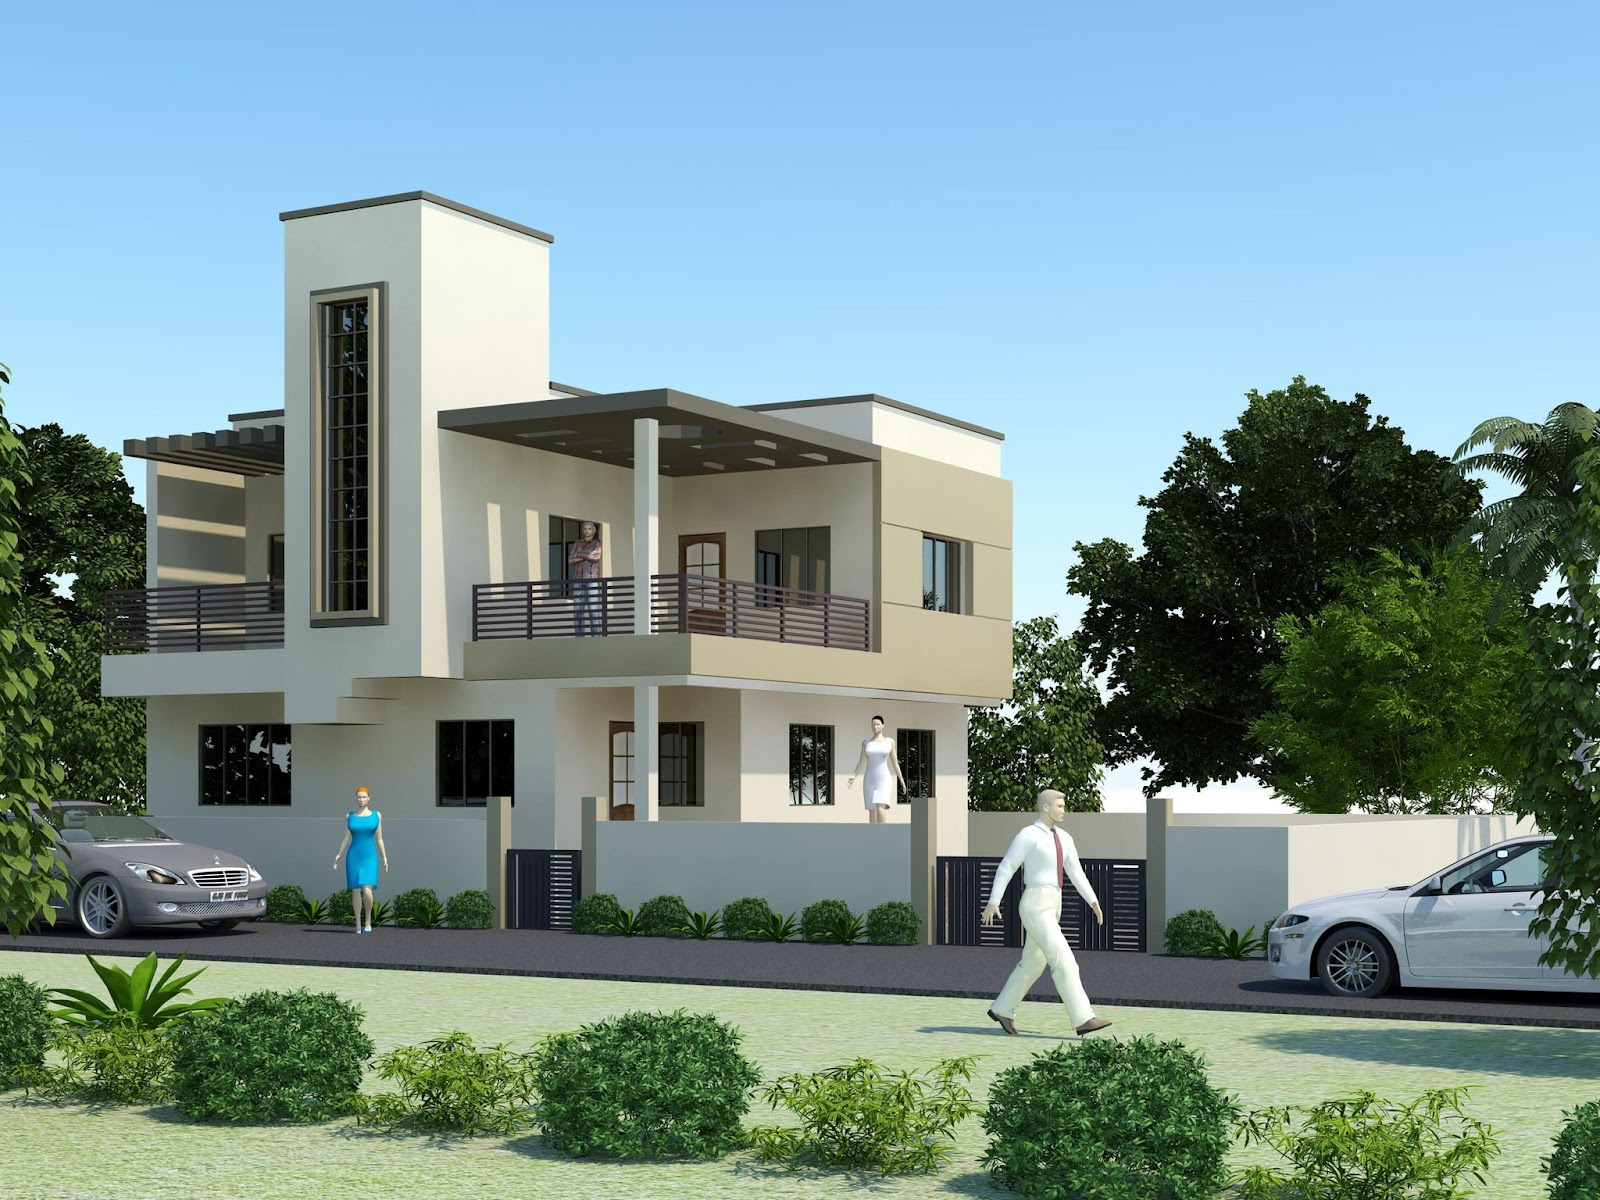 New home designs latest modern homes exterior designs for Modern house front design